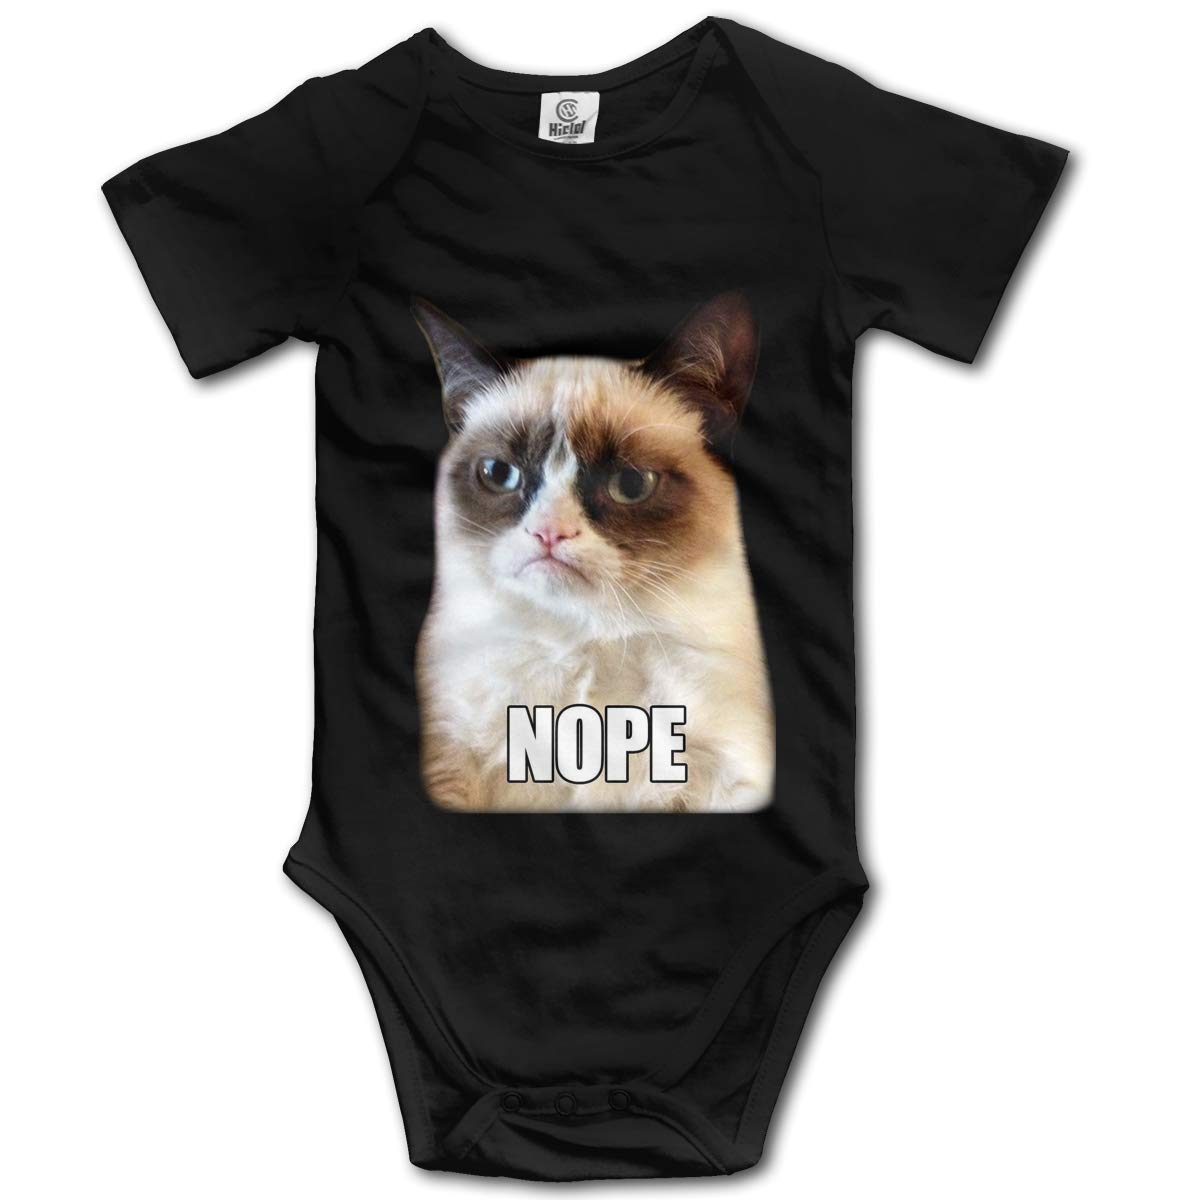 Bodysuits Clothes Onesies Jumpsuits Outfits Black Grumpy Cat Nope Expression Baby Pajamas